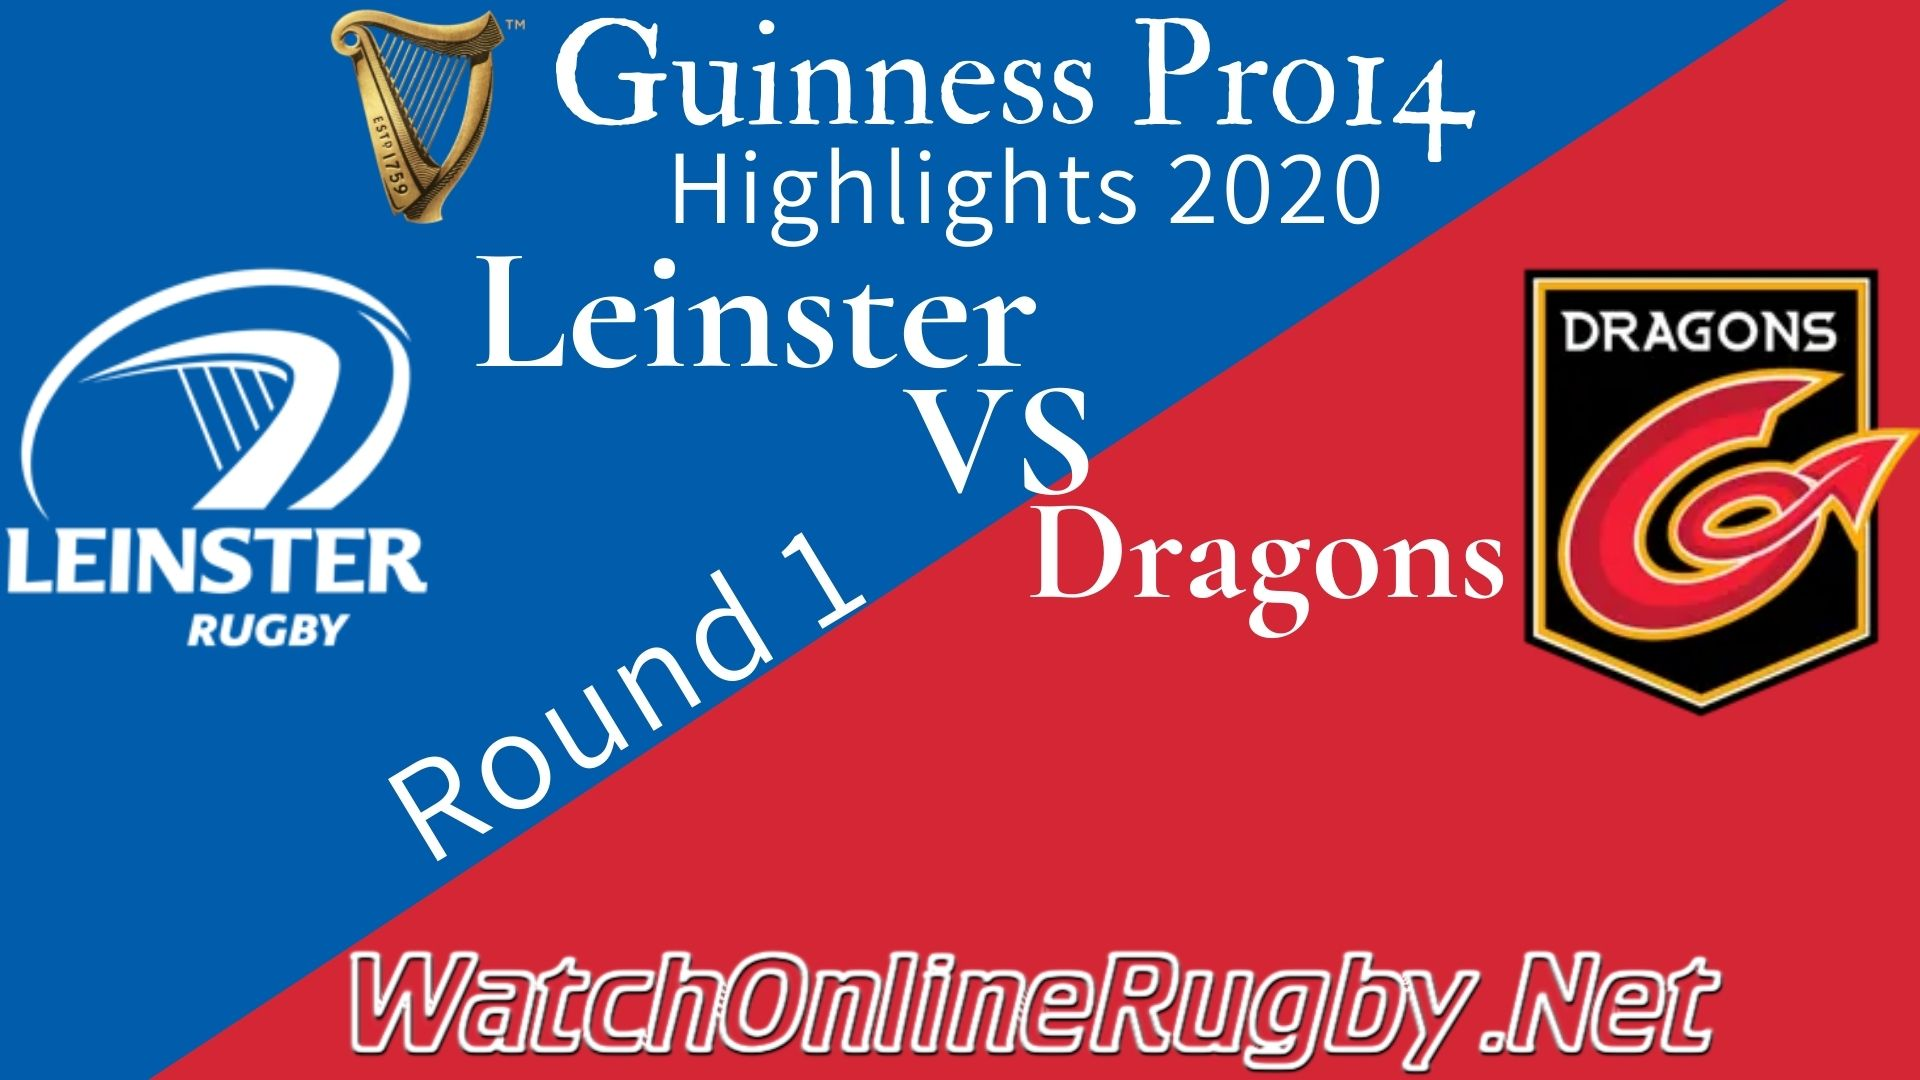 Leinster vs Dragons RD 1 Highlights 2020